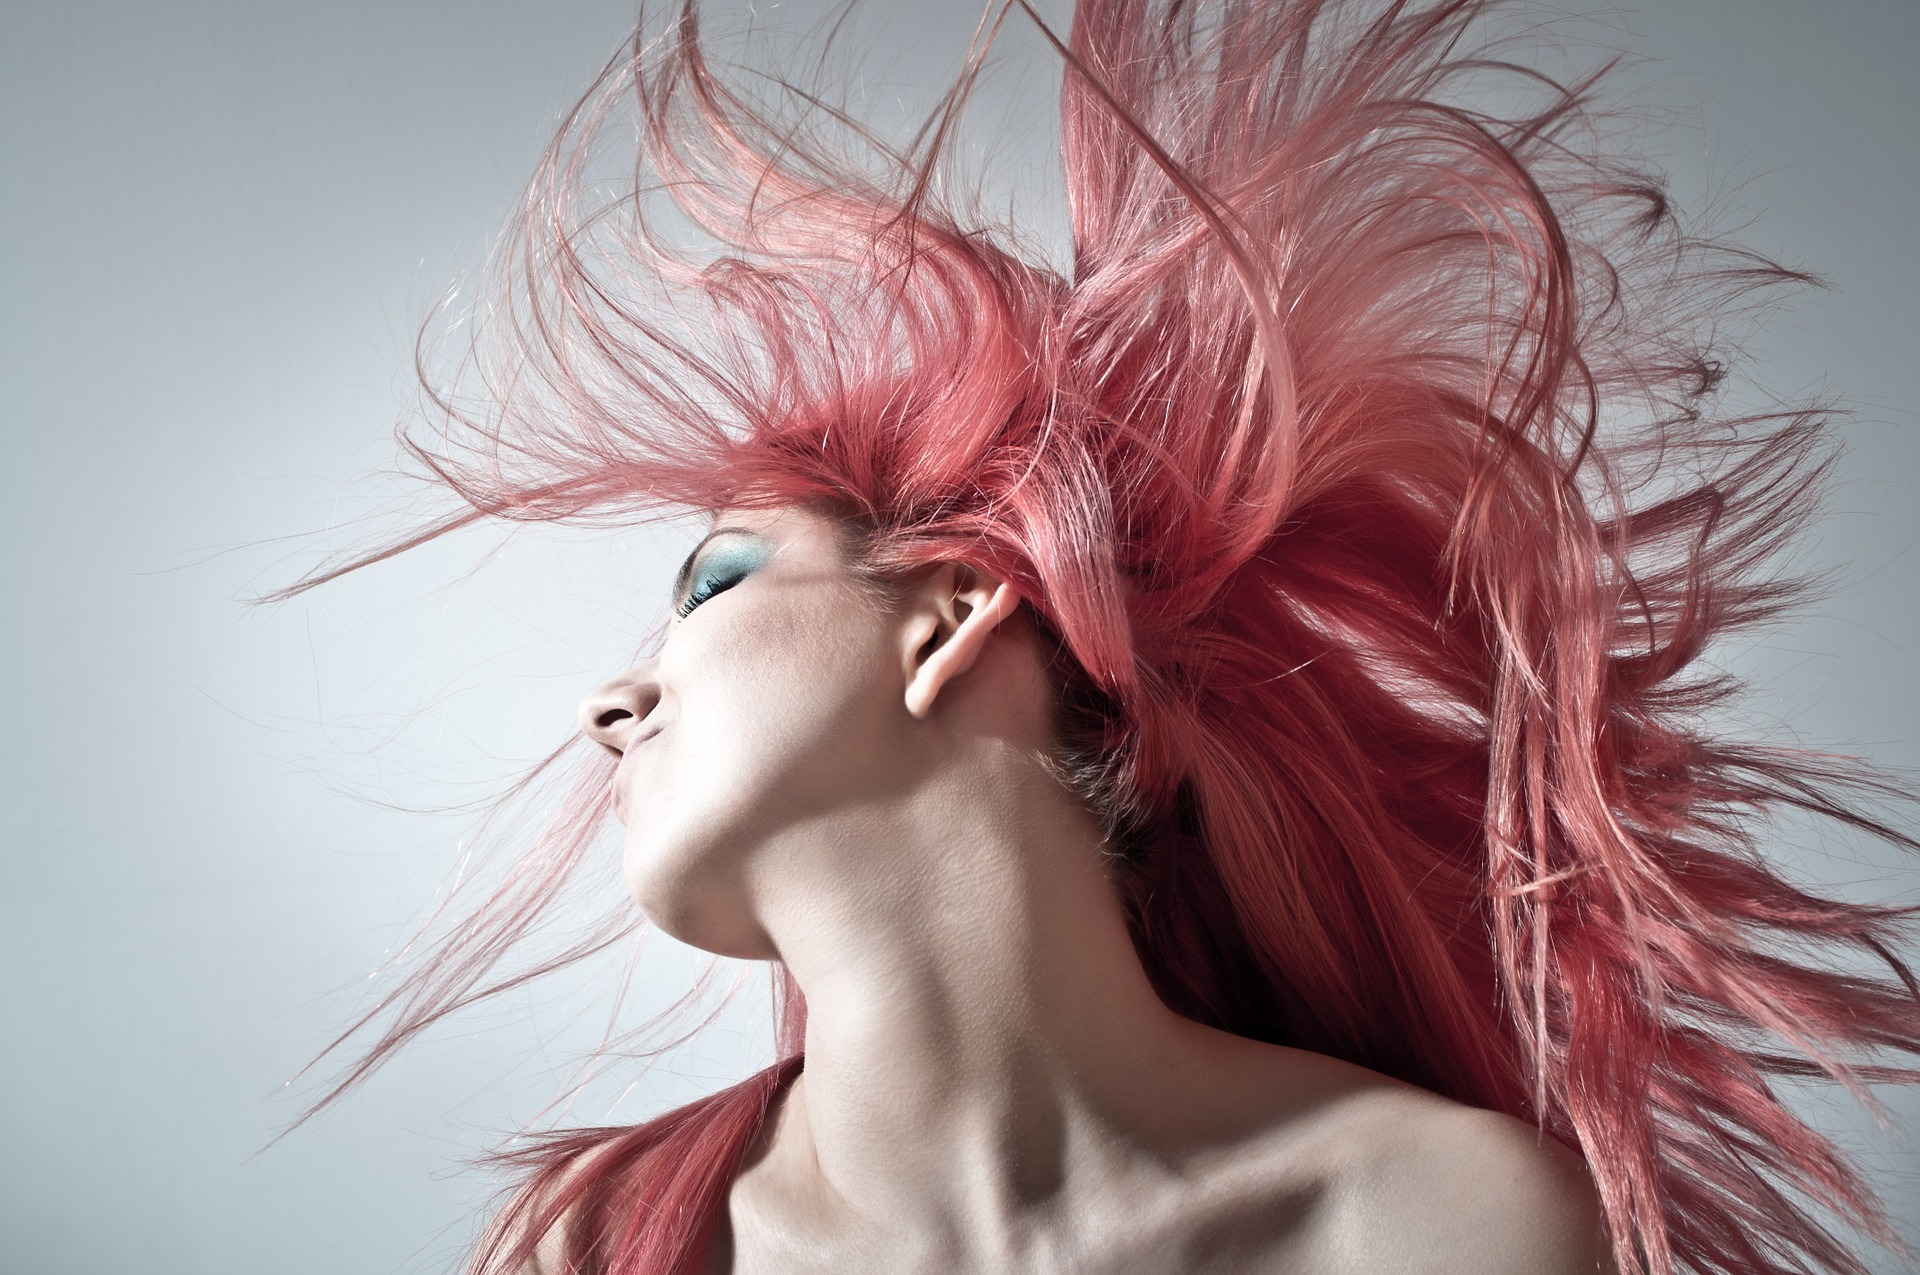 Girl waving her hair has a pink hair color